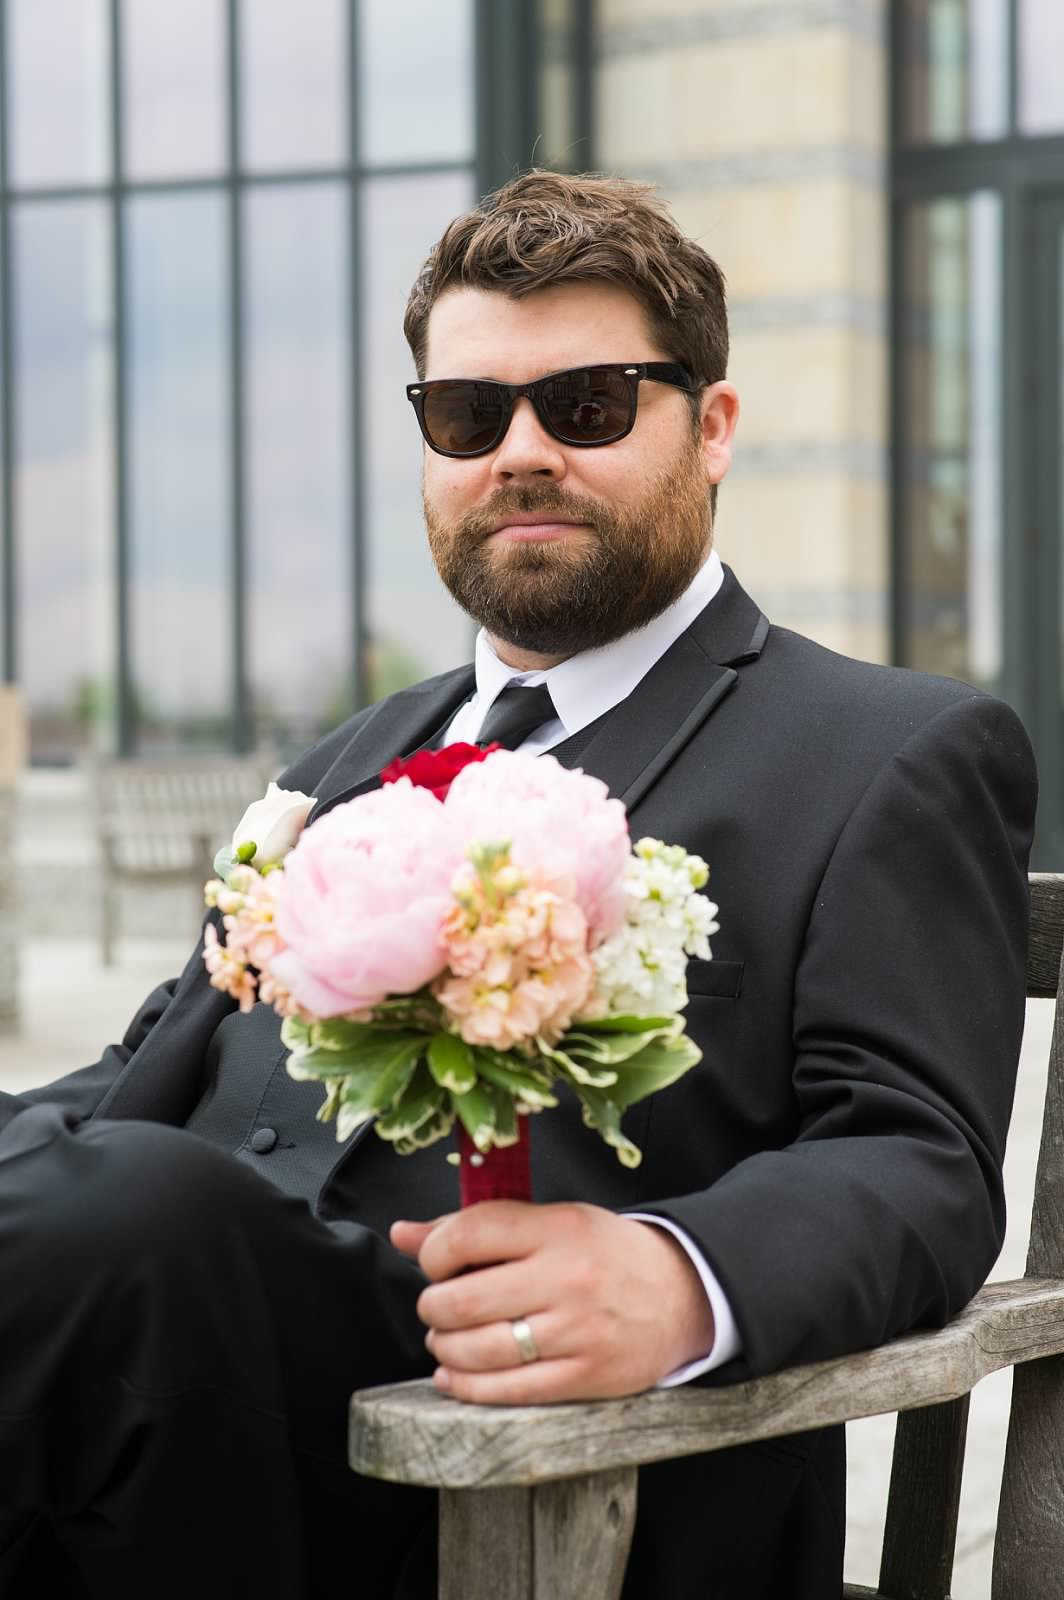 Dapper groomsman in sunglasses holding red, white, and pink bridal bouquet.jpg